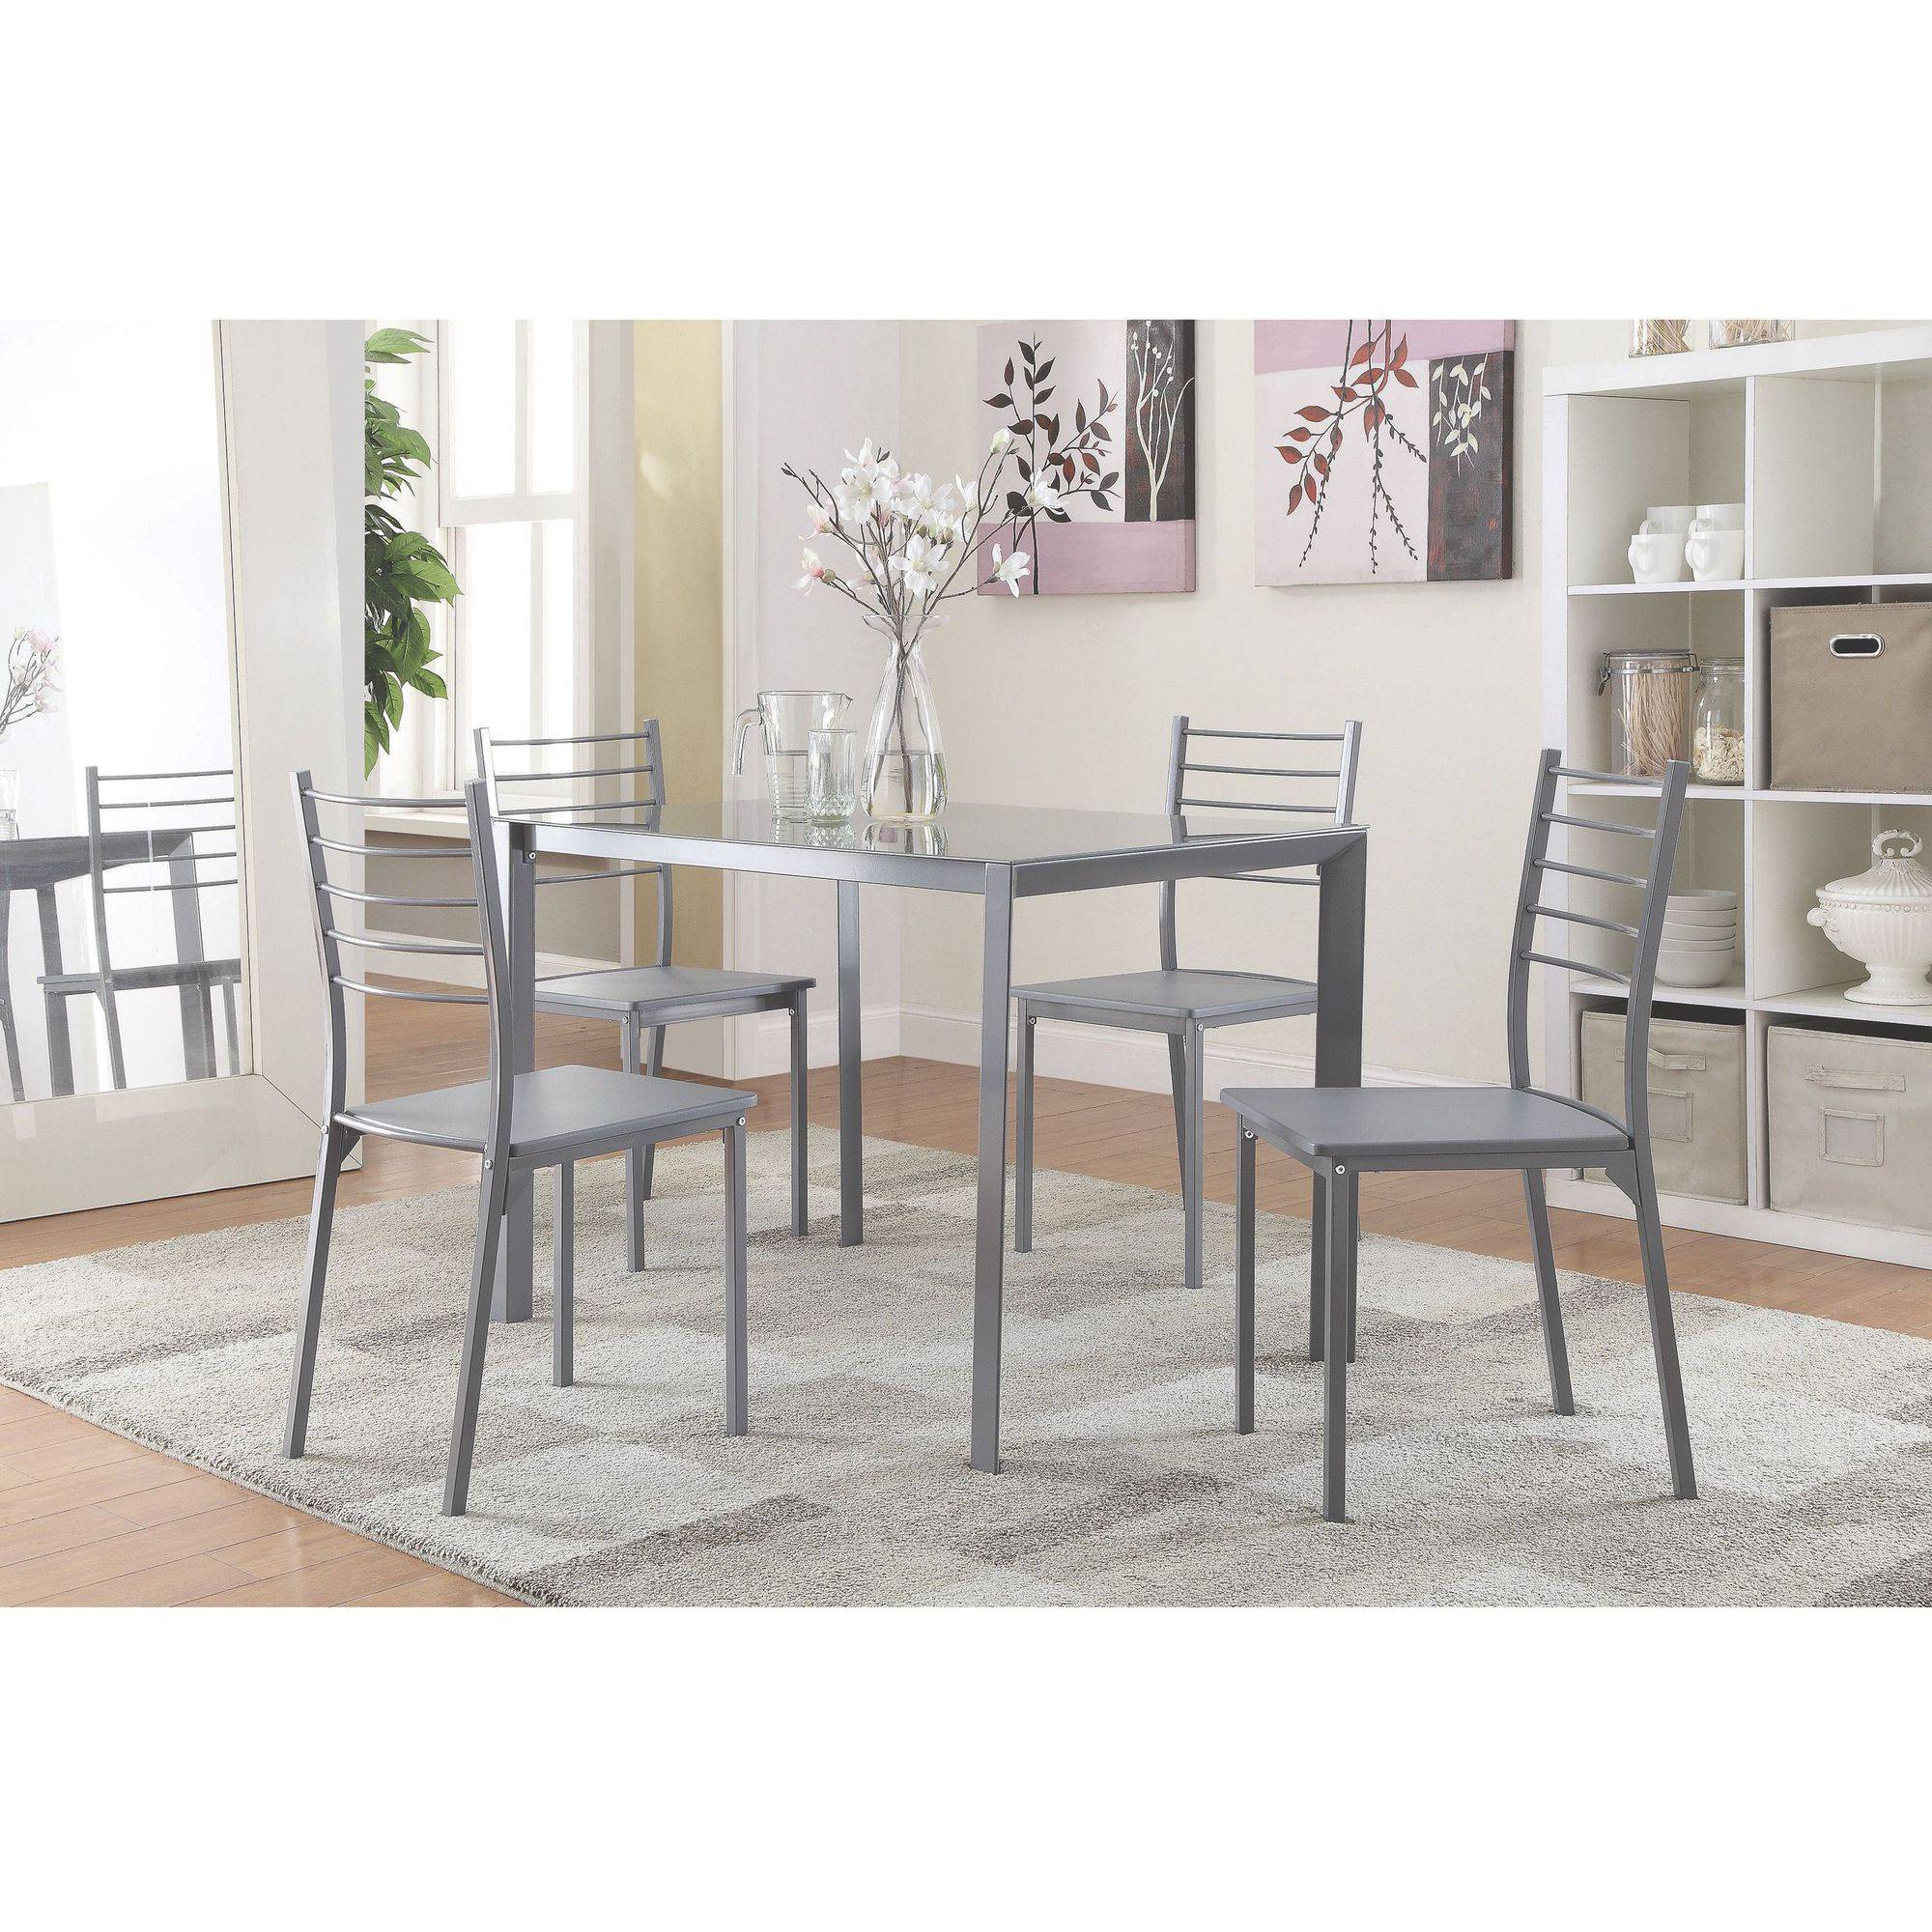 Coaster 5 Piece Glass Top Dining Set In Gray